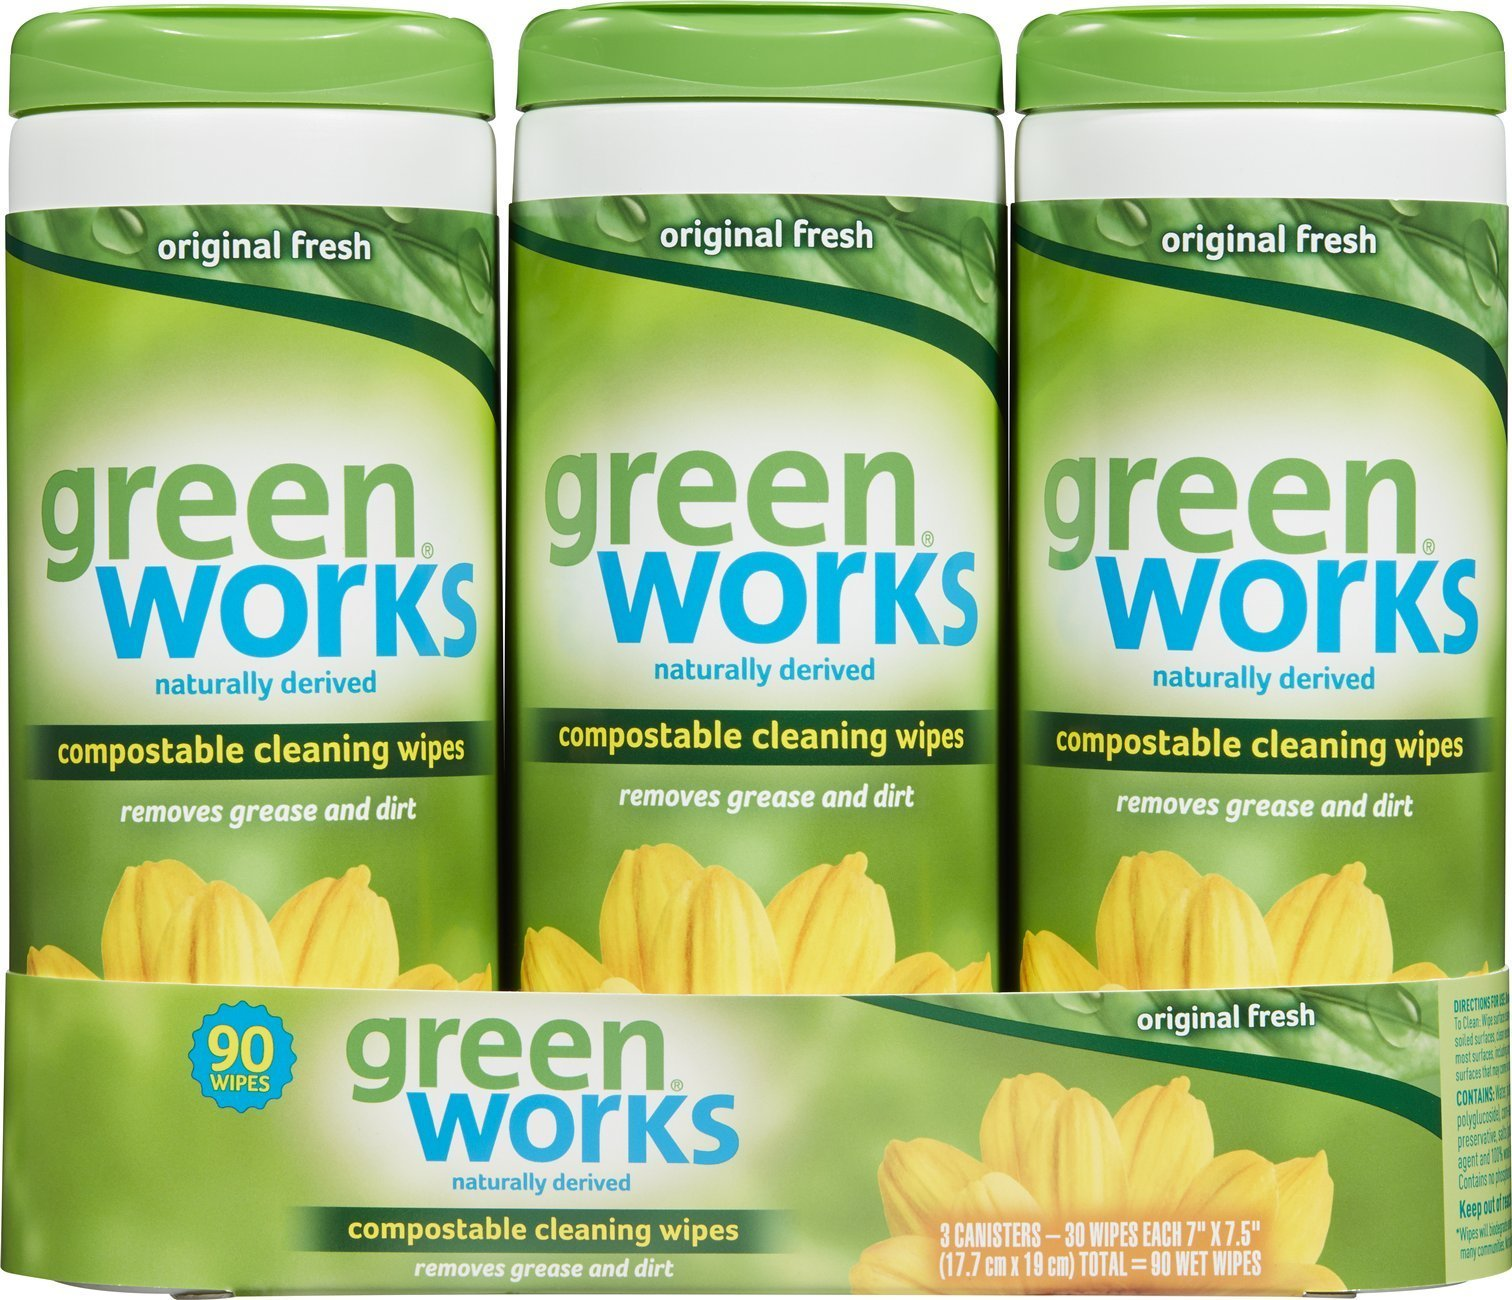 Green Works Compostable Cleaning Wipes, Biodegradable Cleaning Wipes - Original Fresh, 30 Count Each (Pack of 3)